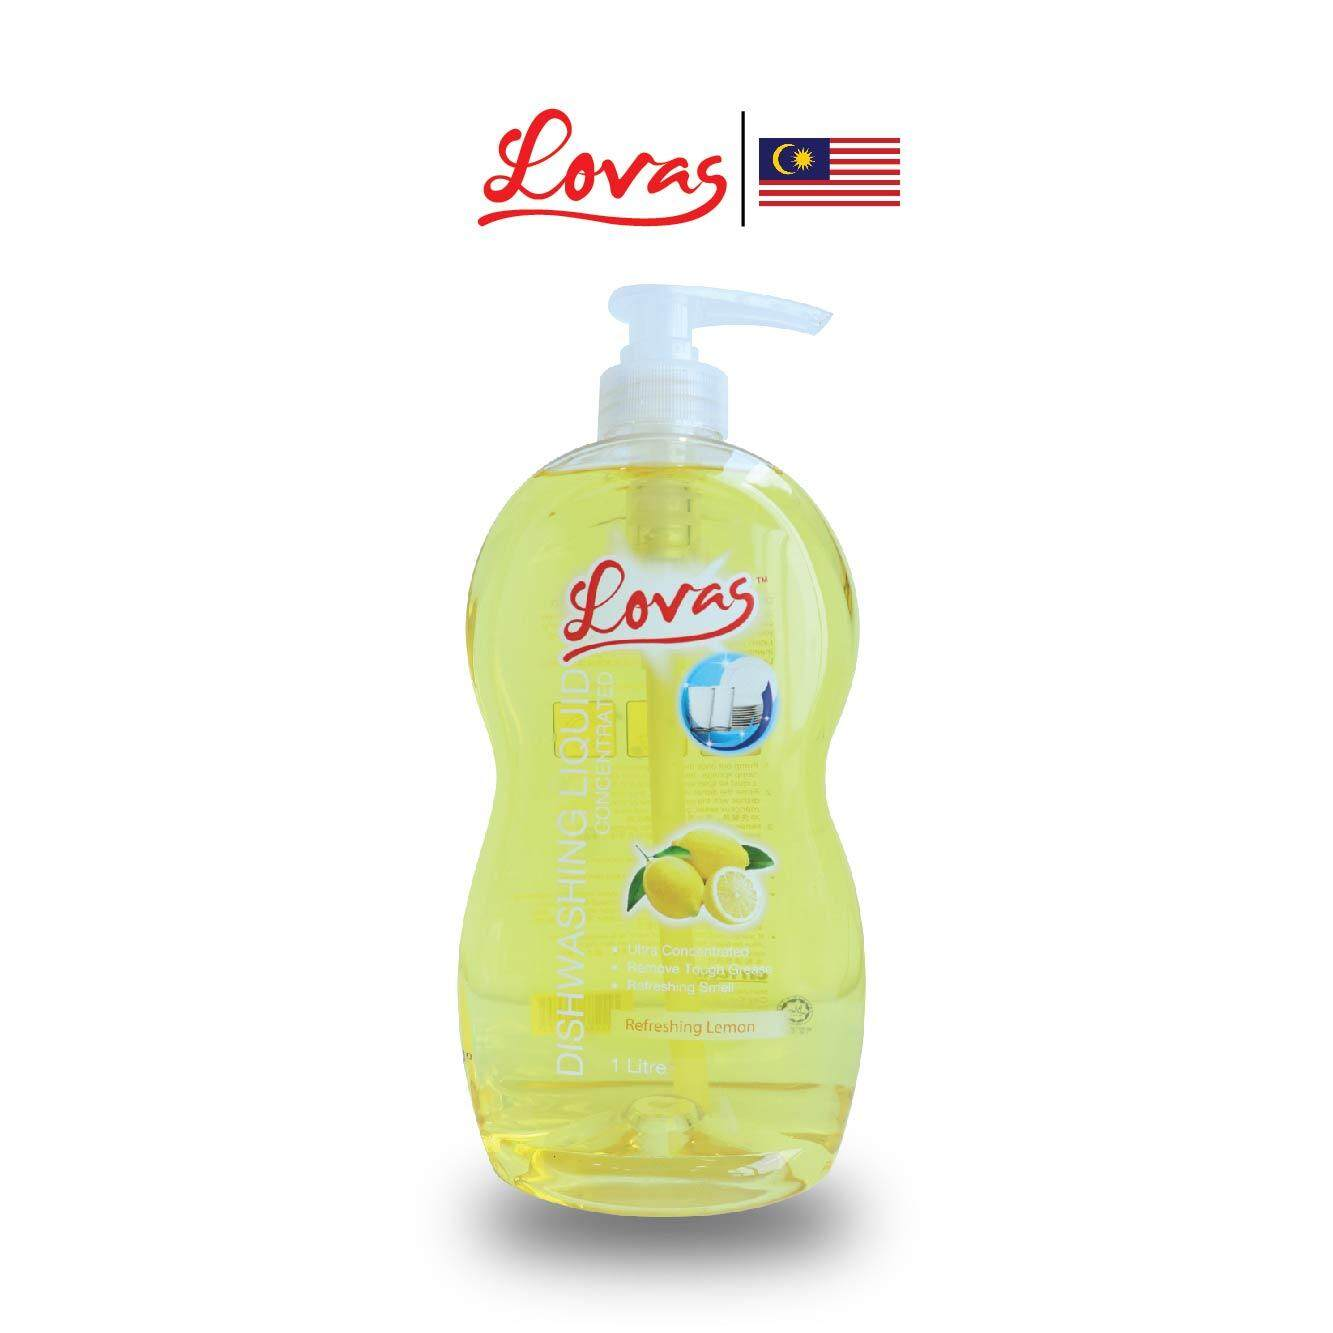 LOVAS Dishwashing Liquid Concentrated - 1L [Lemon] - Oil & Grease Remover